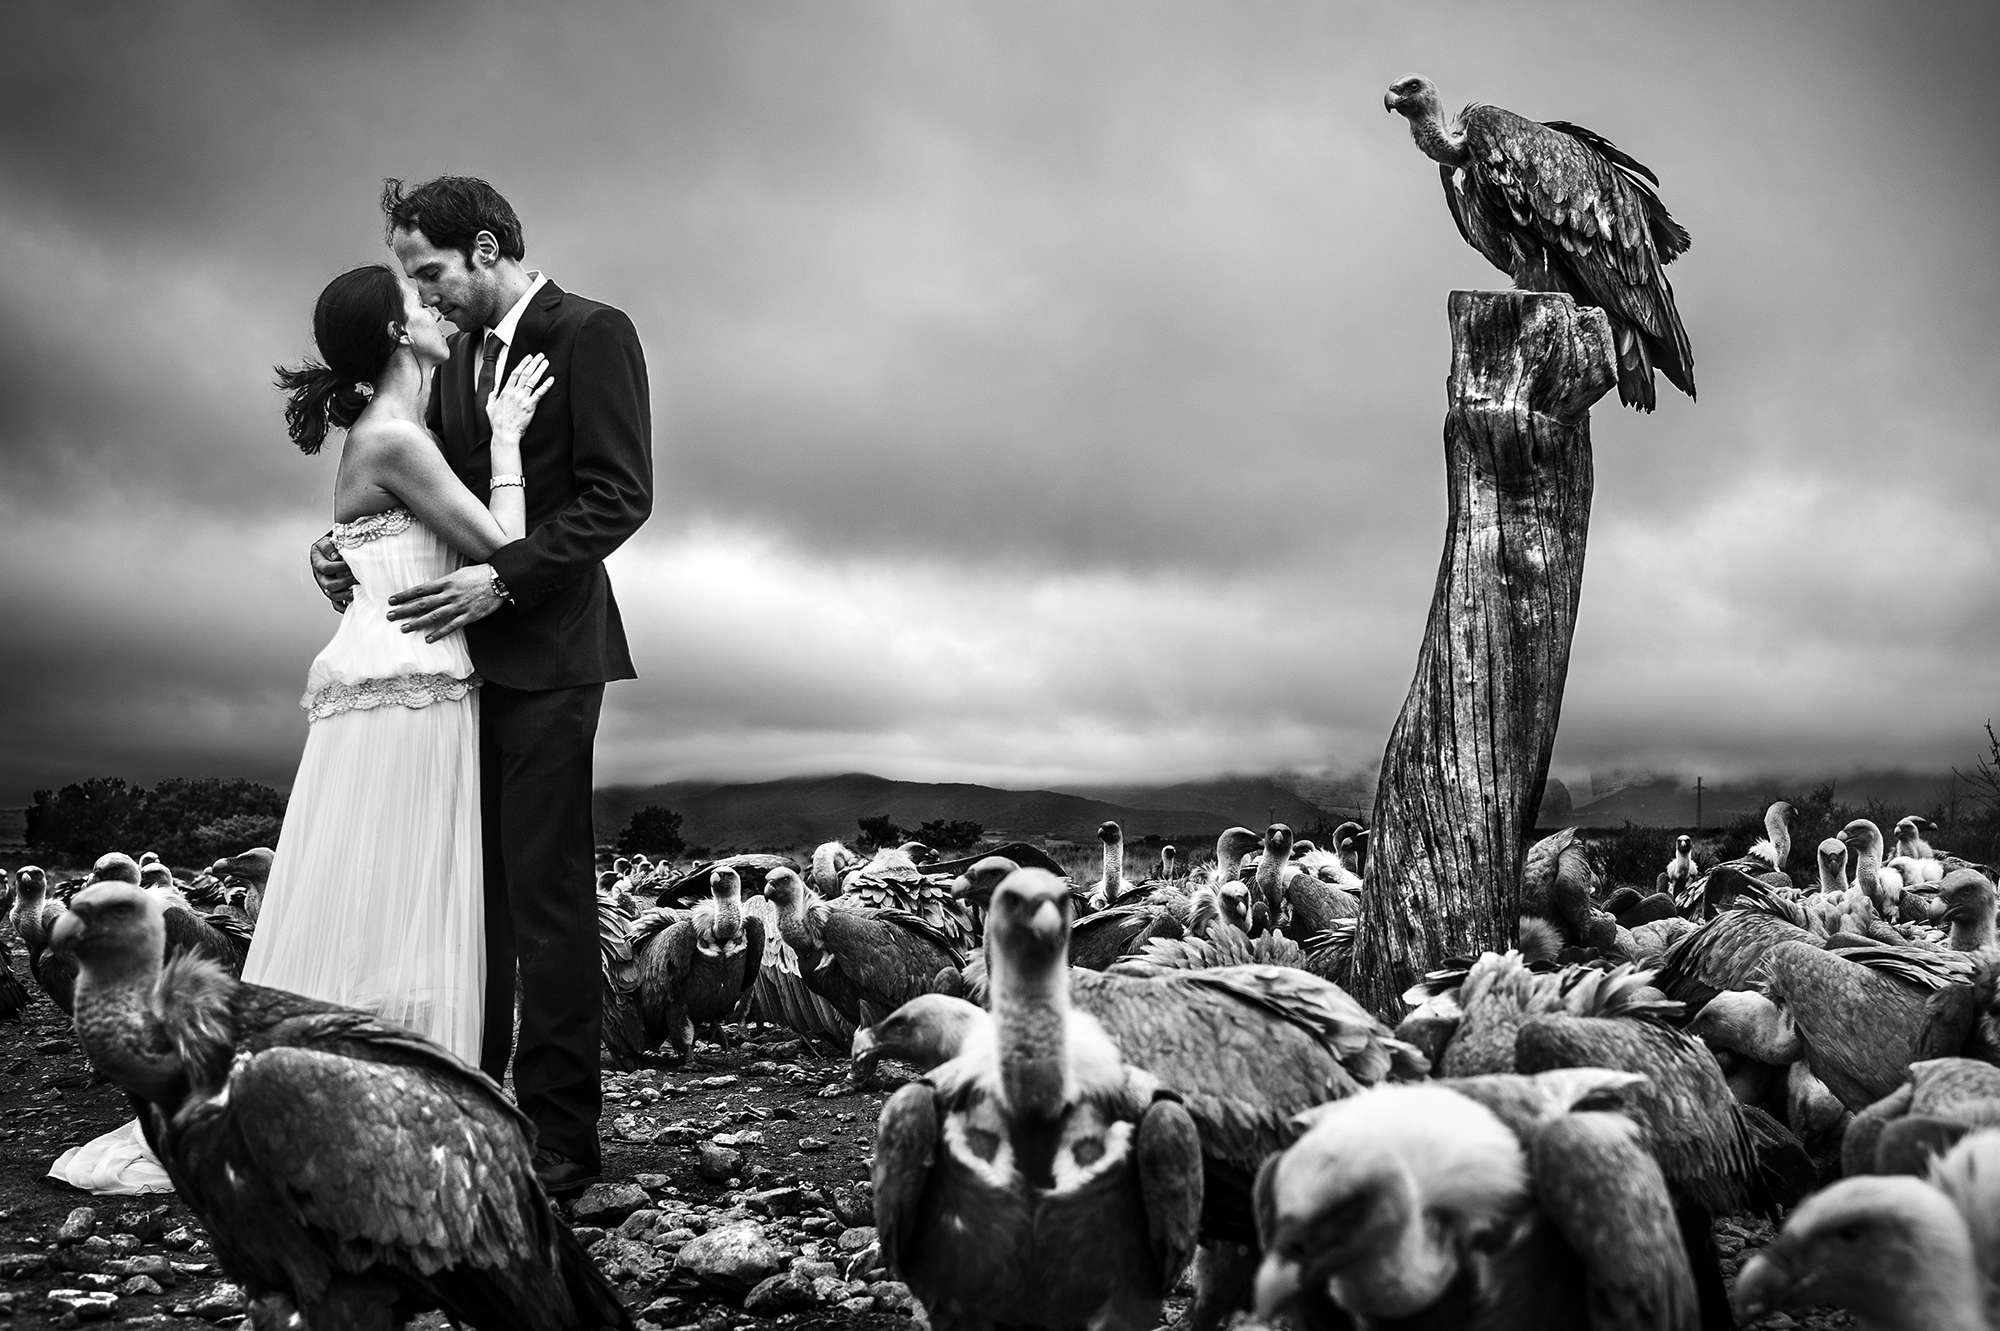 Bride and groom amidst flock of vultures - photo by Victor Lax